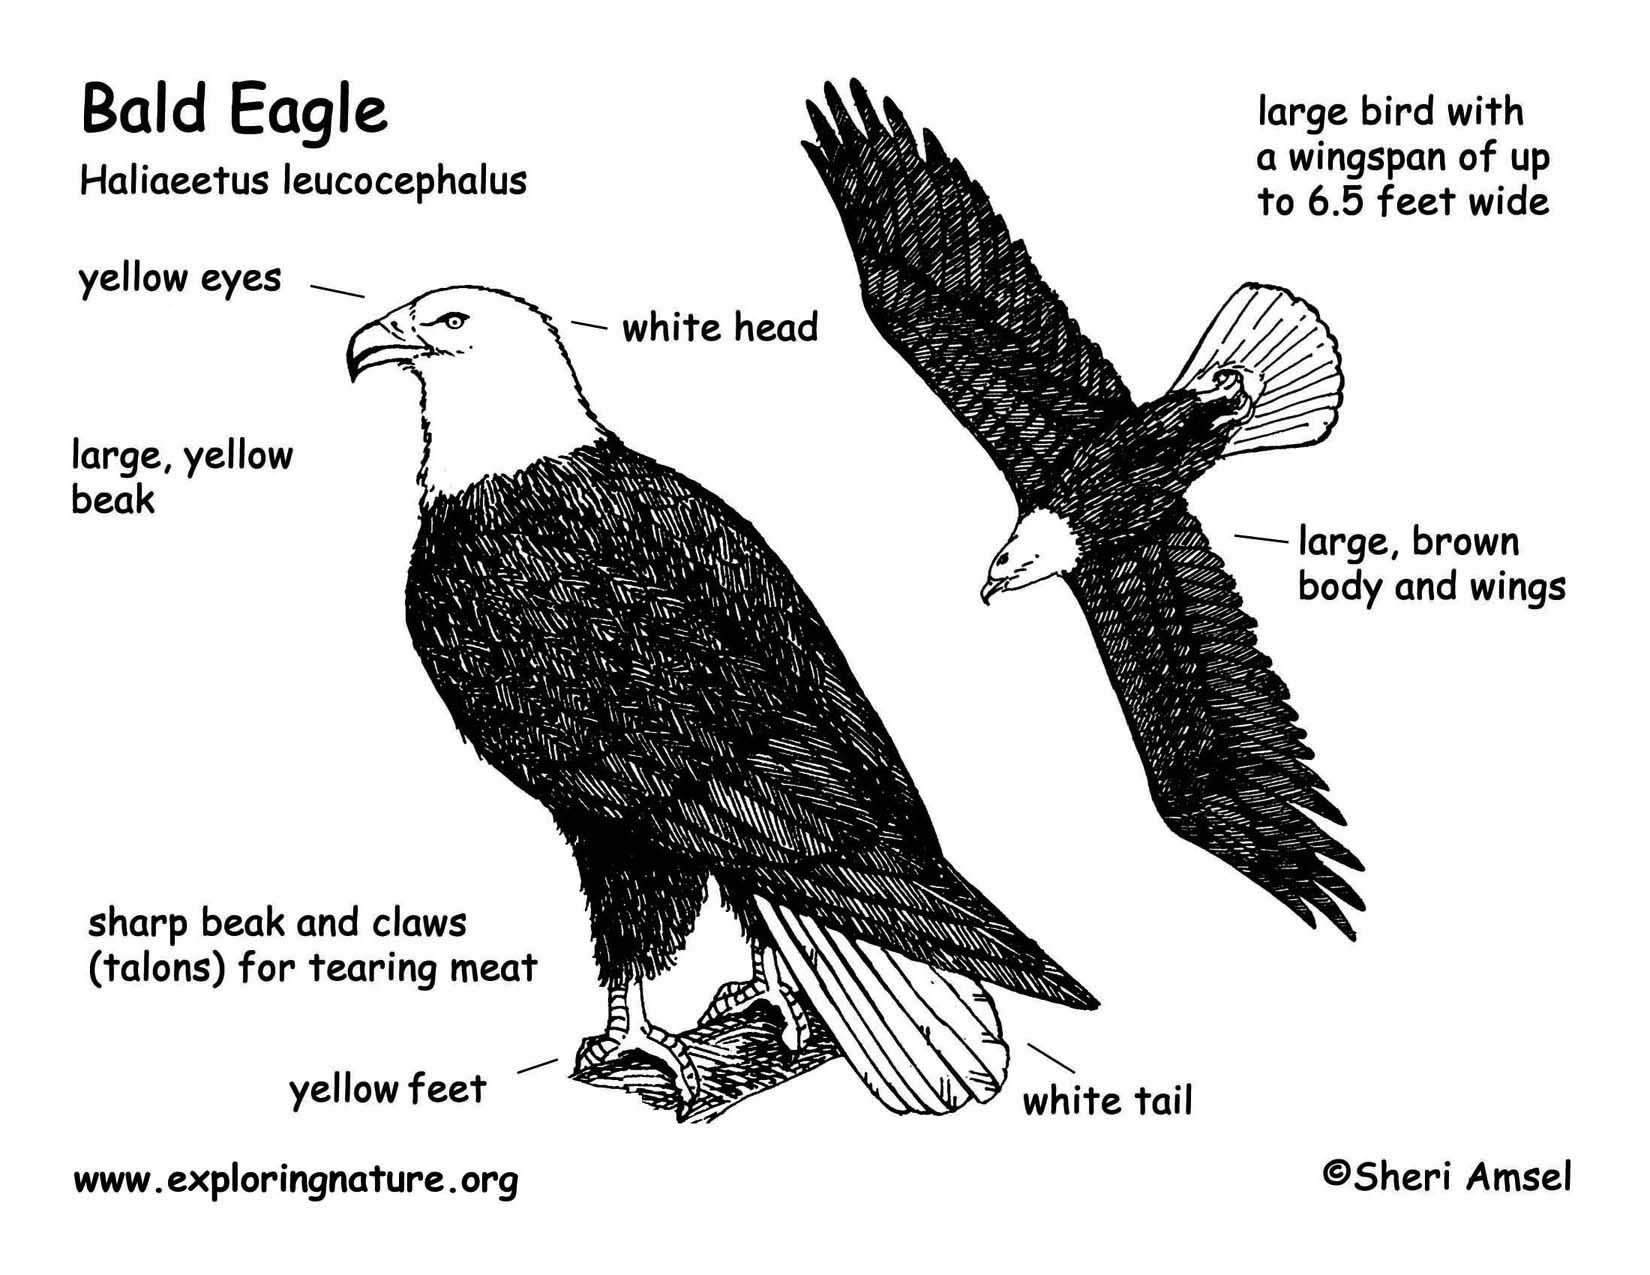 Golden Eagle Vs Bald Eagle